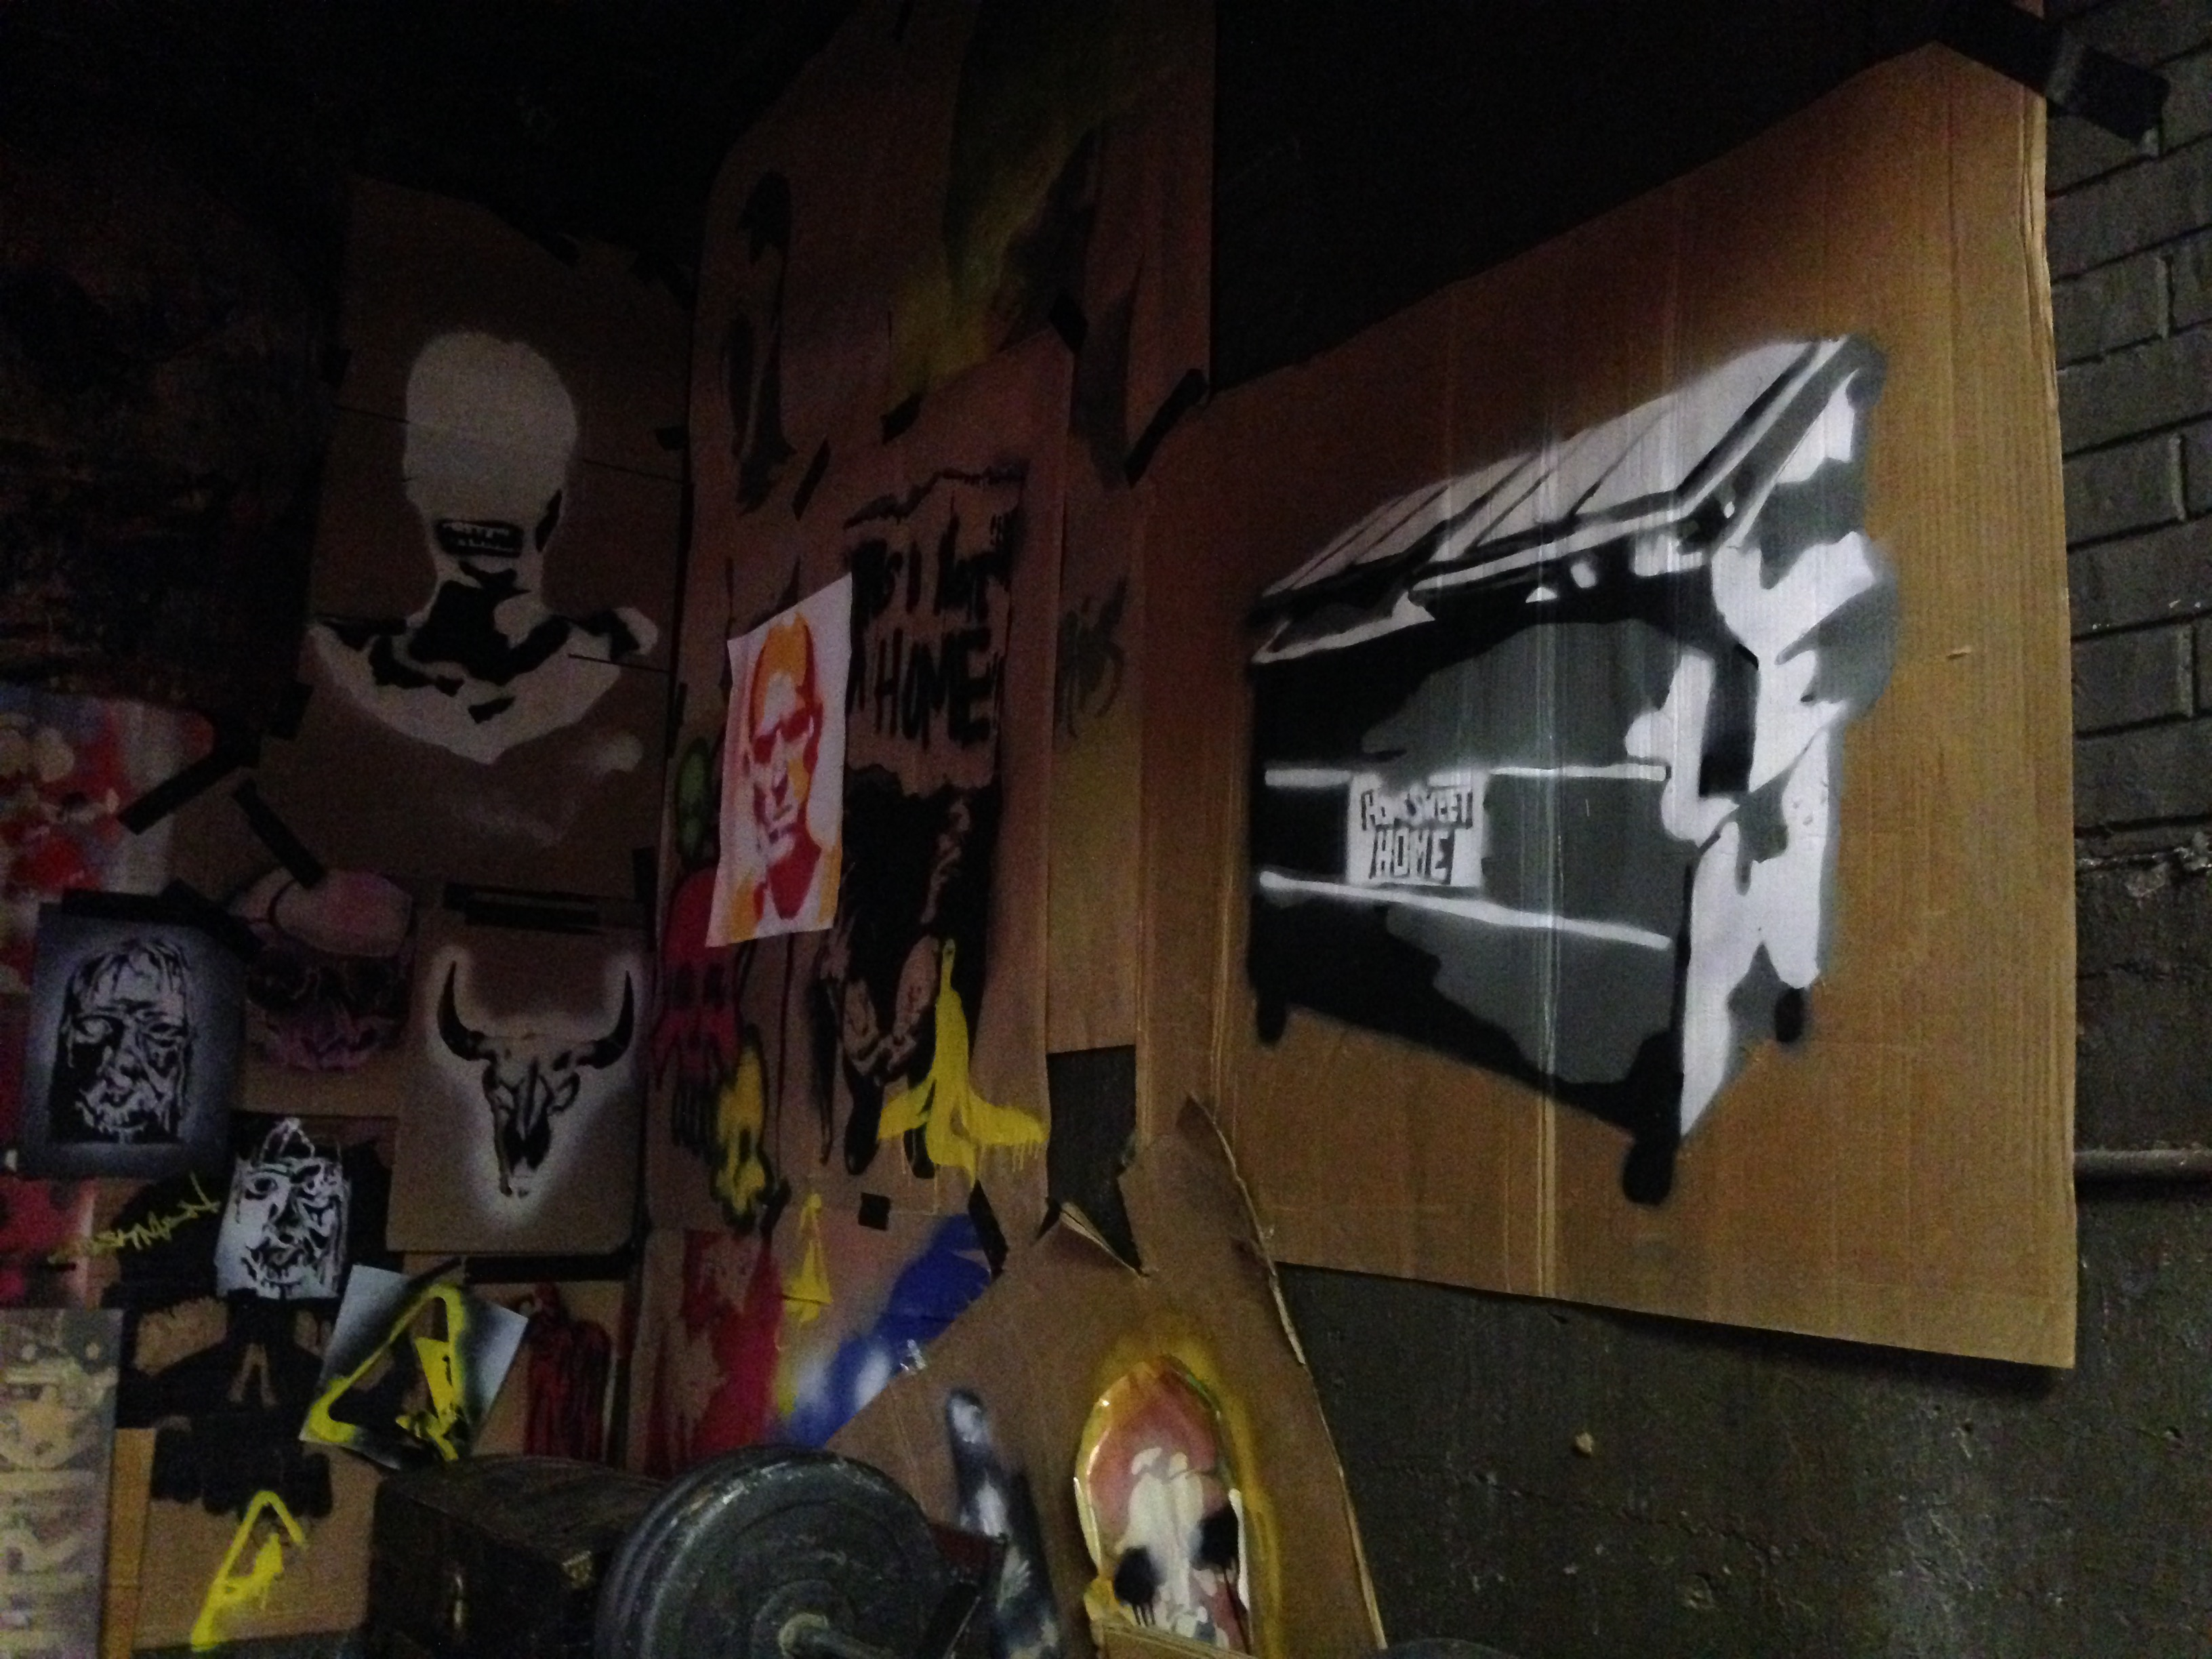 Graffiti Artist's Studio